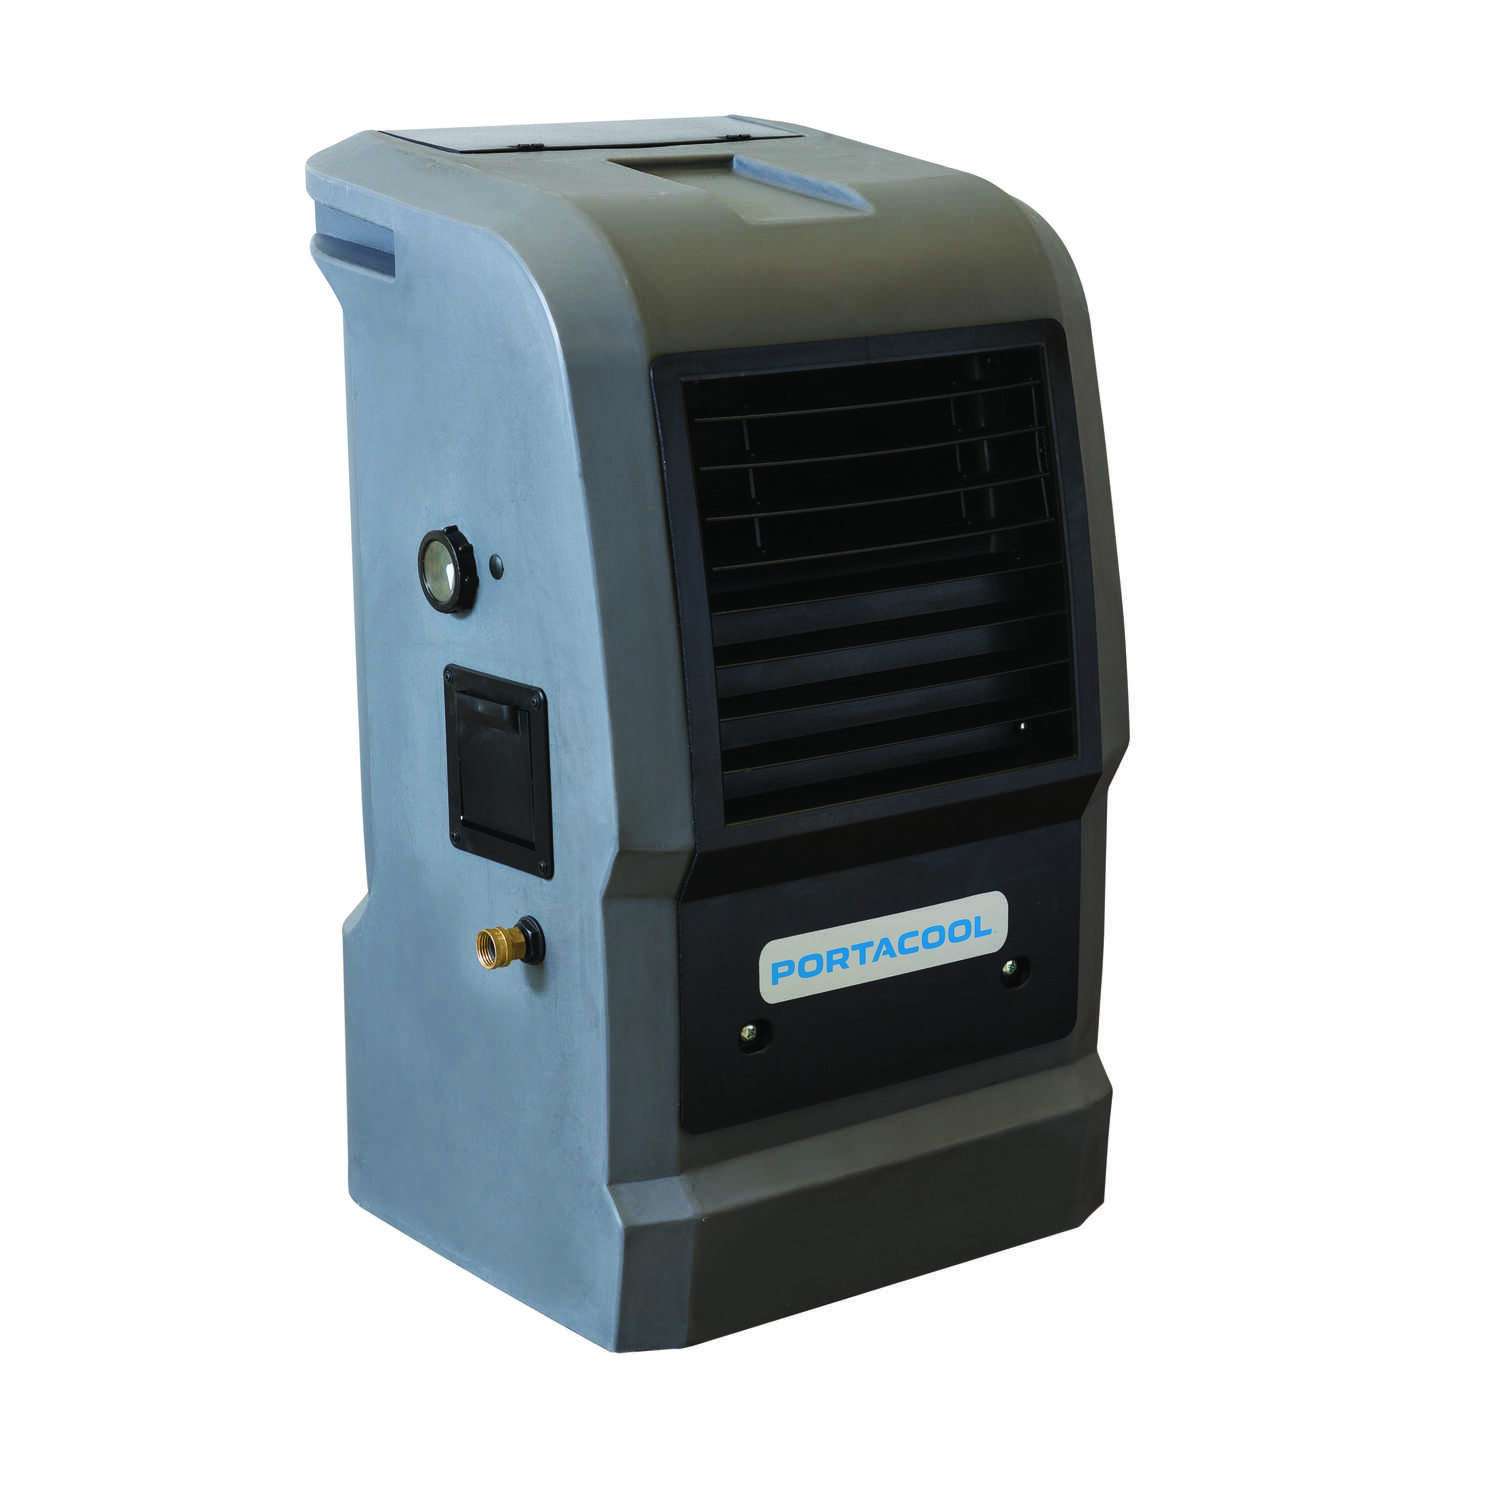 Portacool  Cyclone  300 sq. ft. Portable Evaporative Cooler  1000 CFM